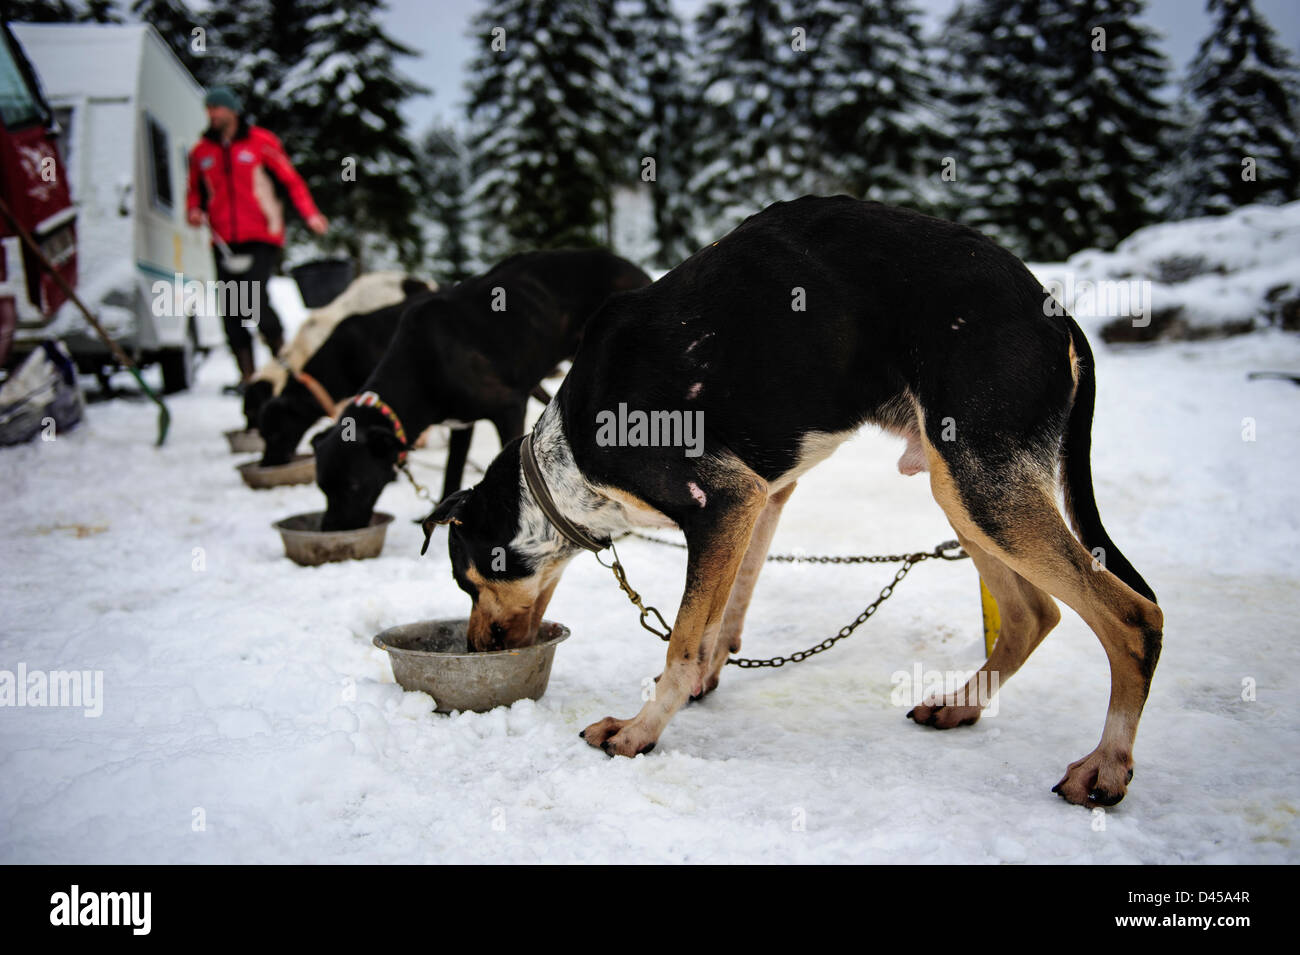 Sled dogs eating before the Border Rush competition in Jakuszyce, Poland. - Stock Image